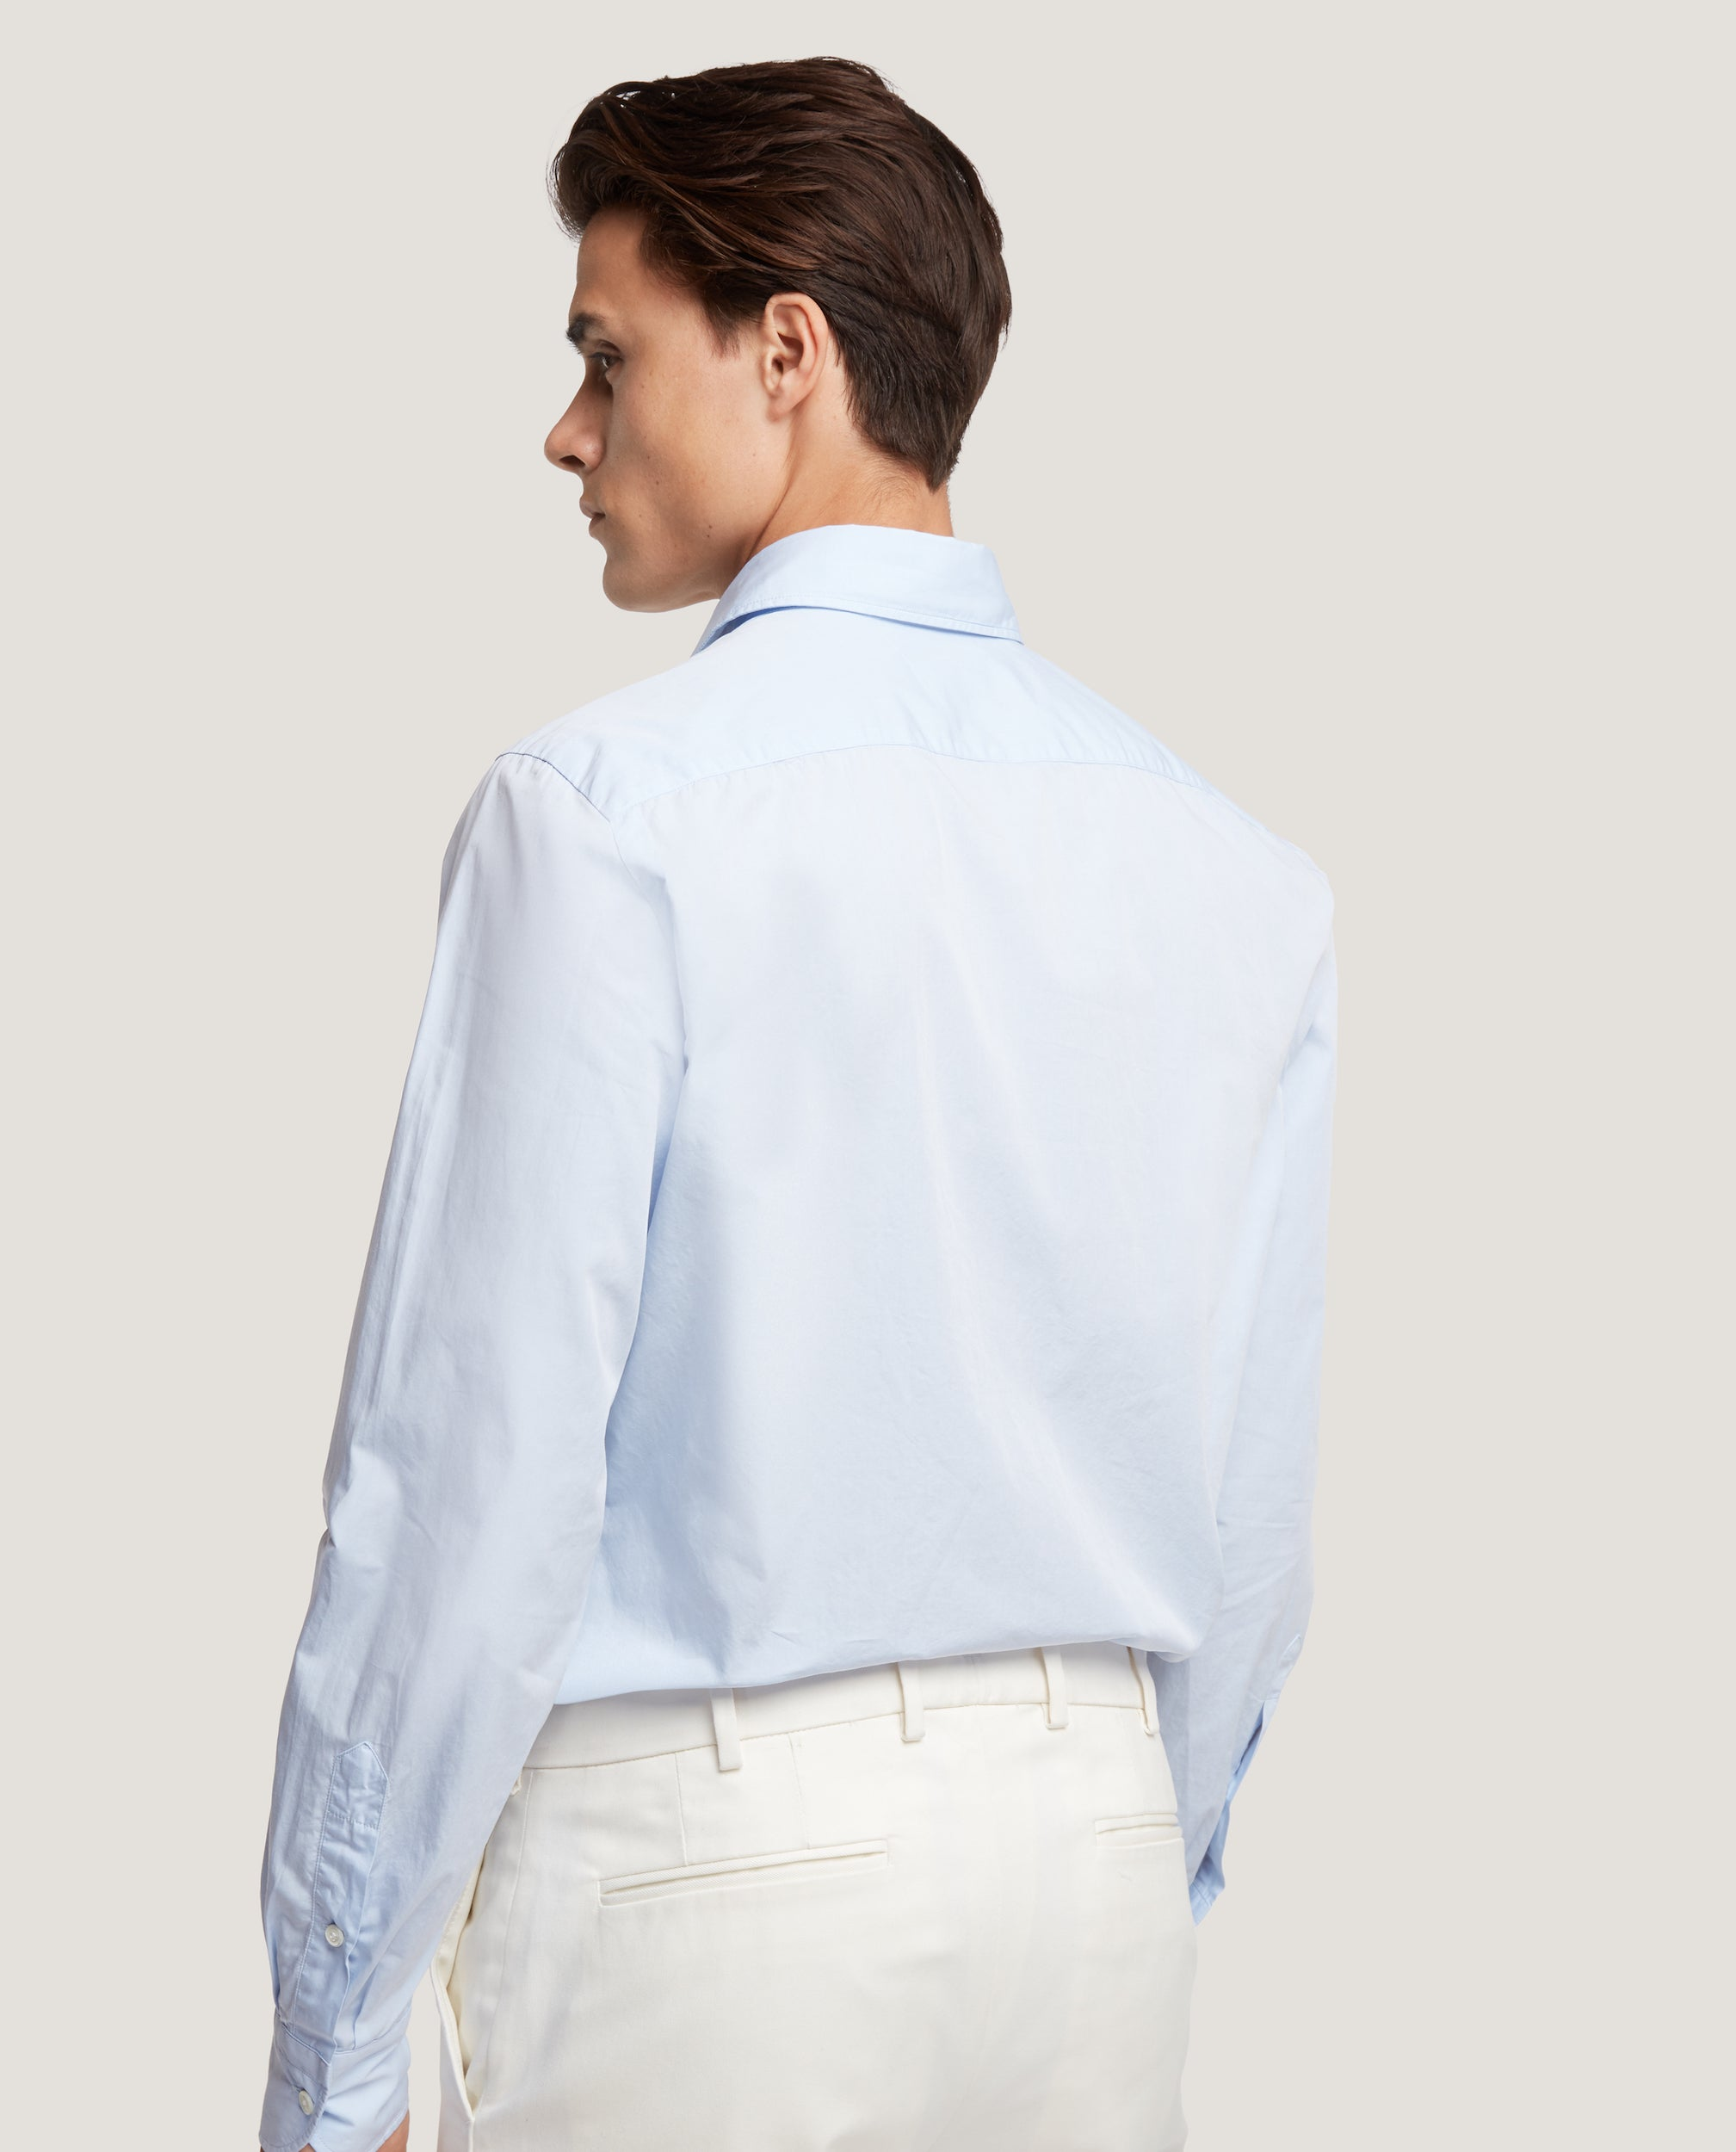 CURTIS Slim fit shirt | Light poplin